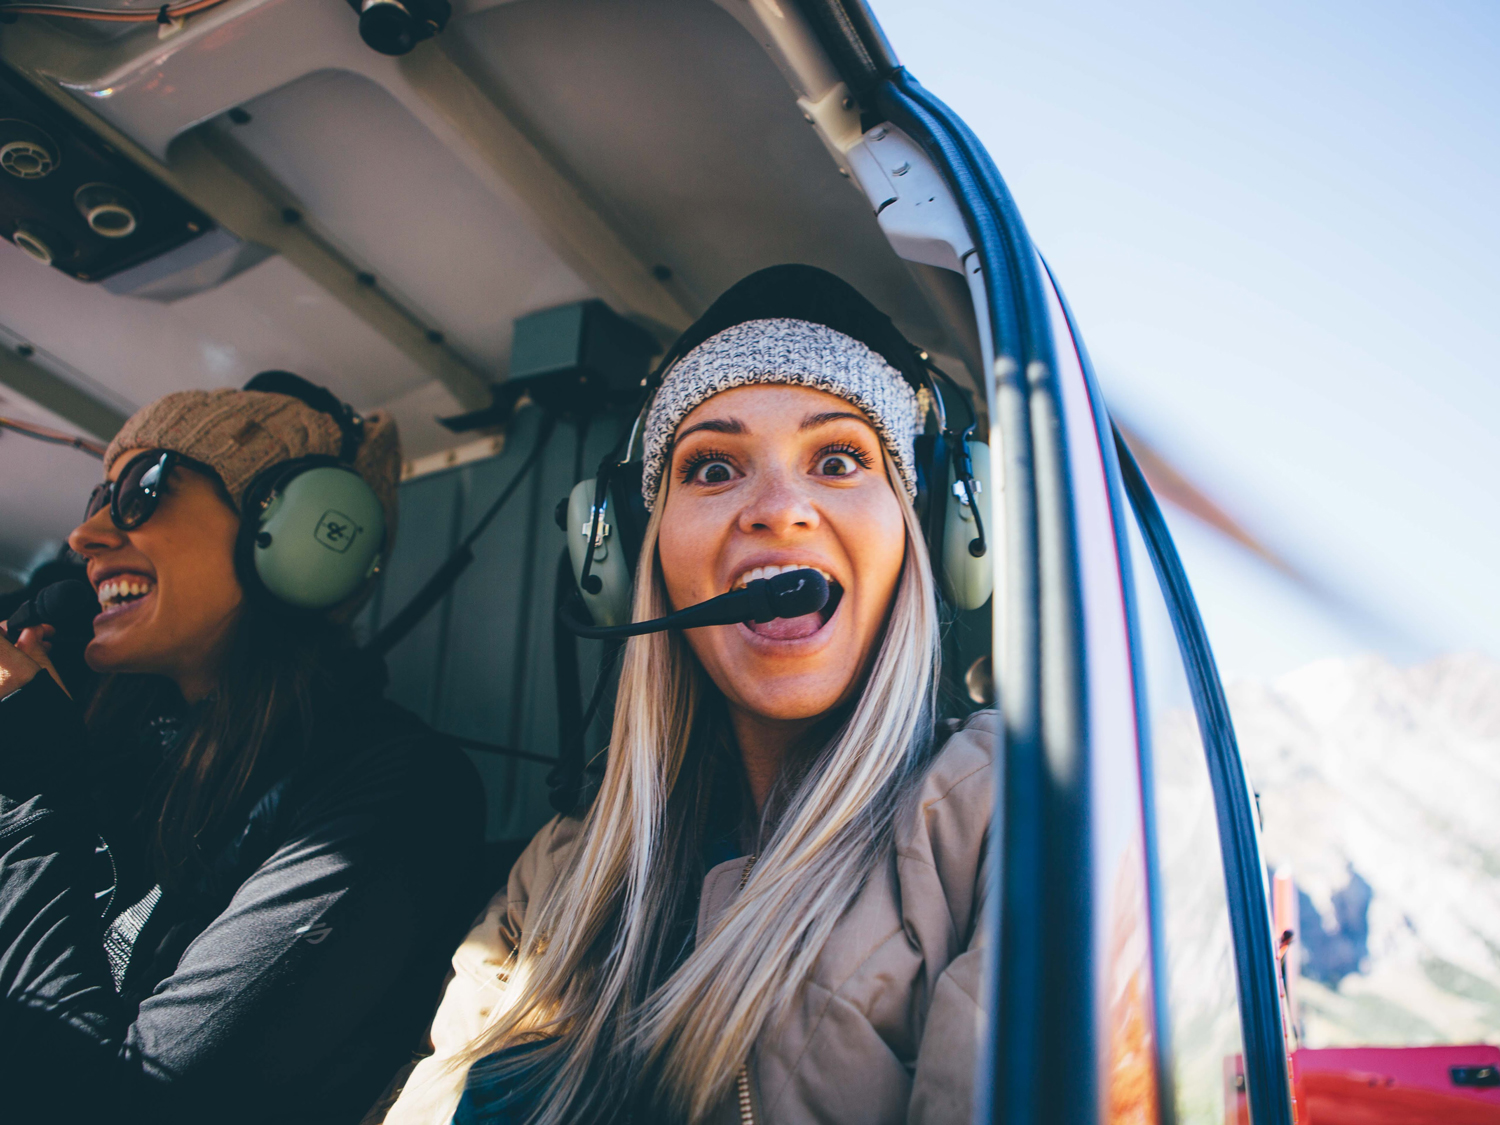 Here's What Happened When Julianne Hough and Jessica Szohr Went On an Outdoor Adventure